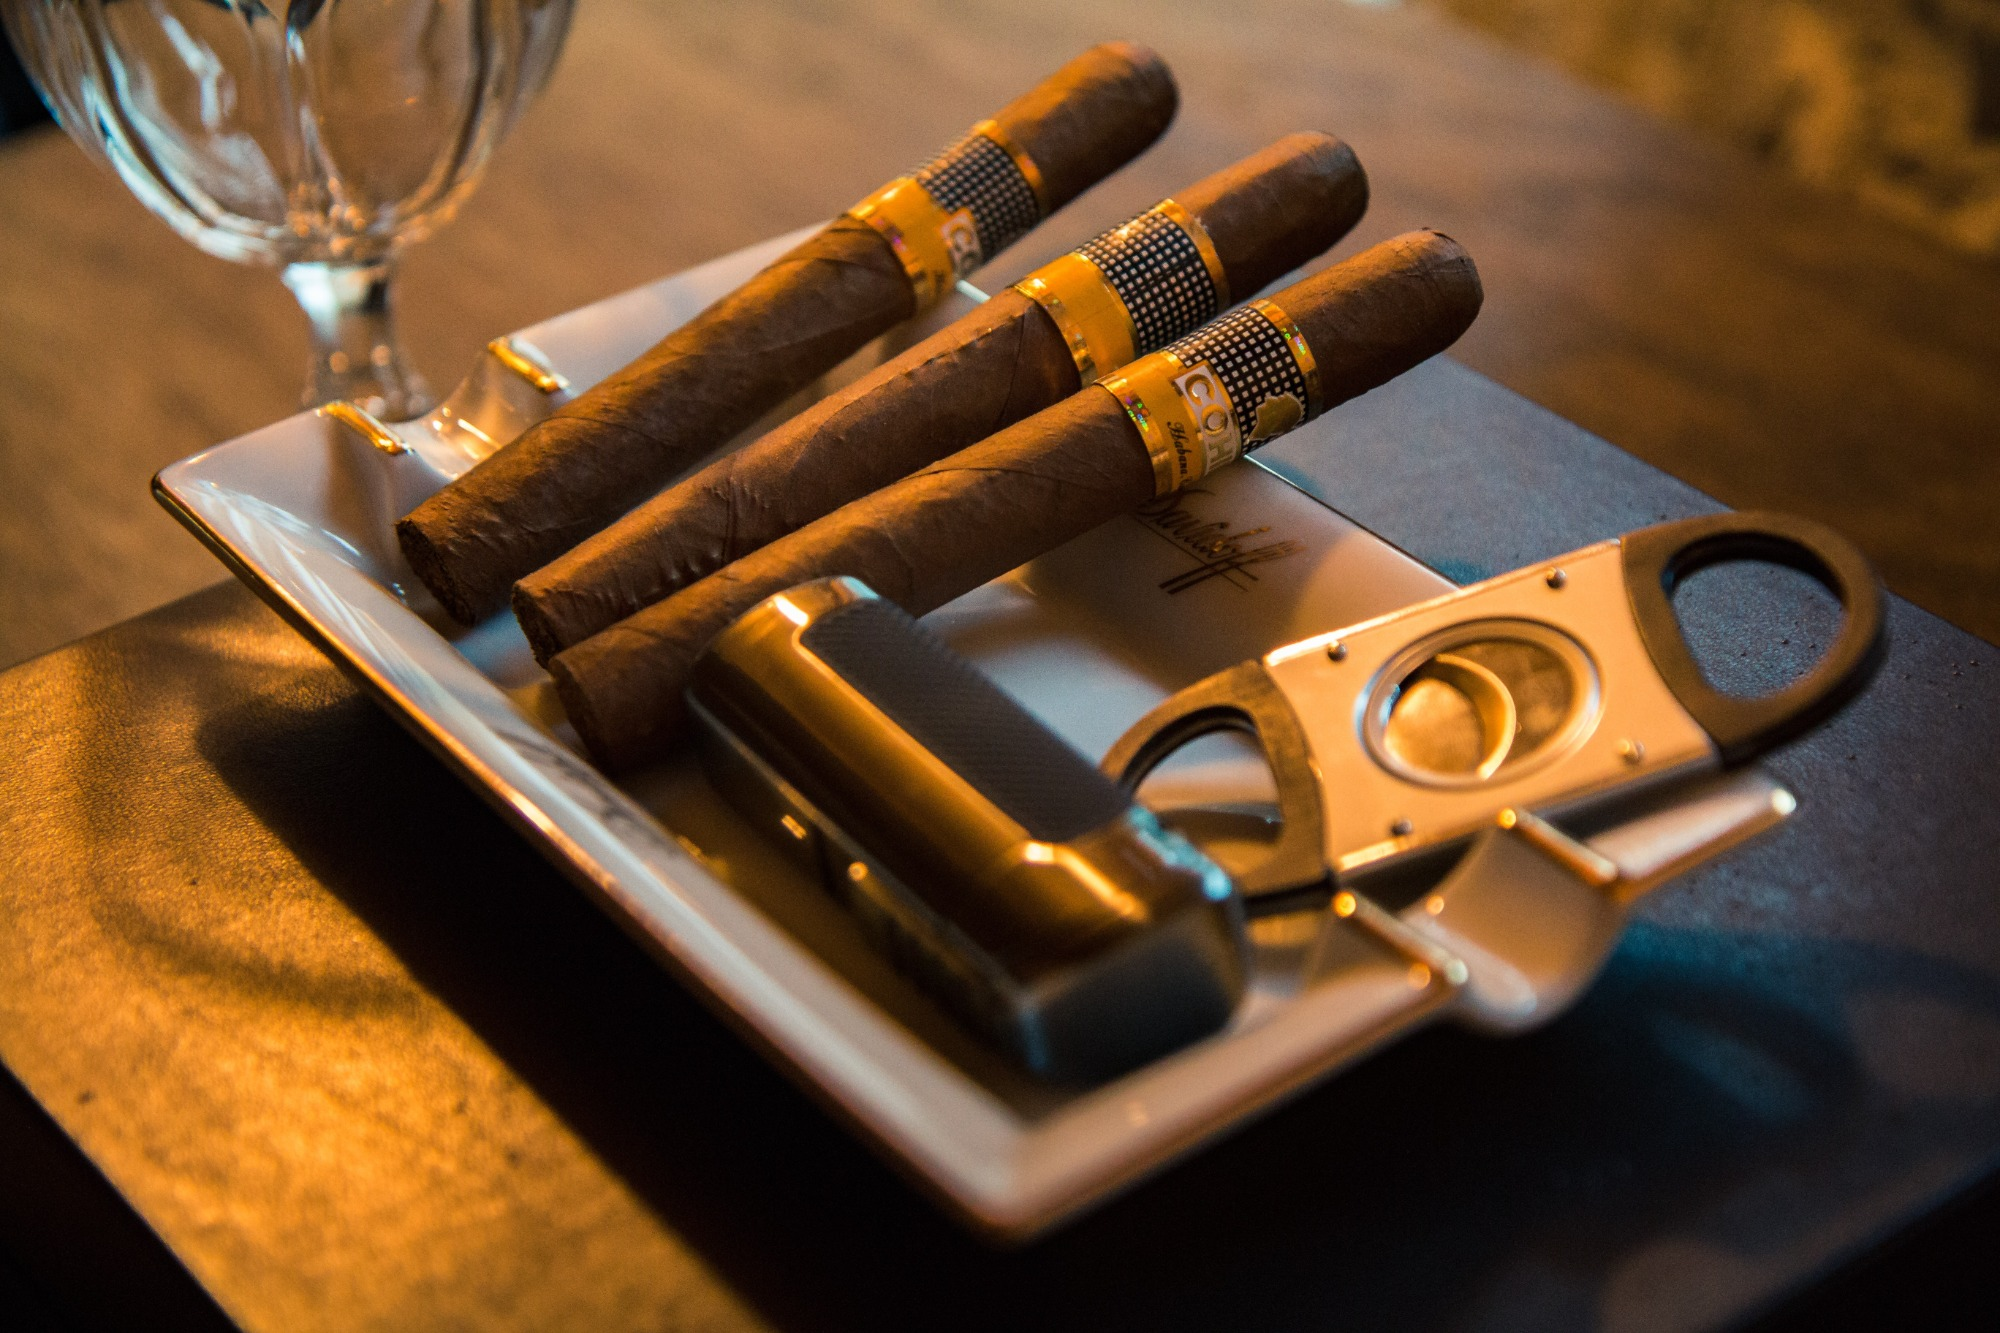 Three cigars, a cigar cutter and a lighter in an ashtray